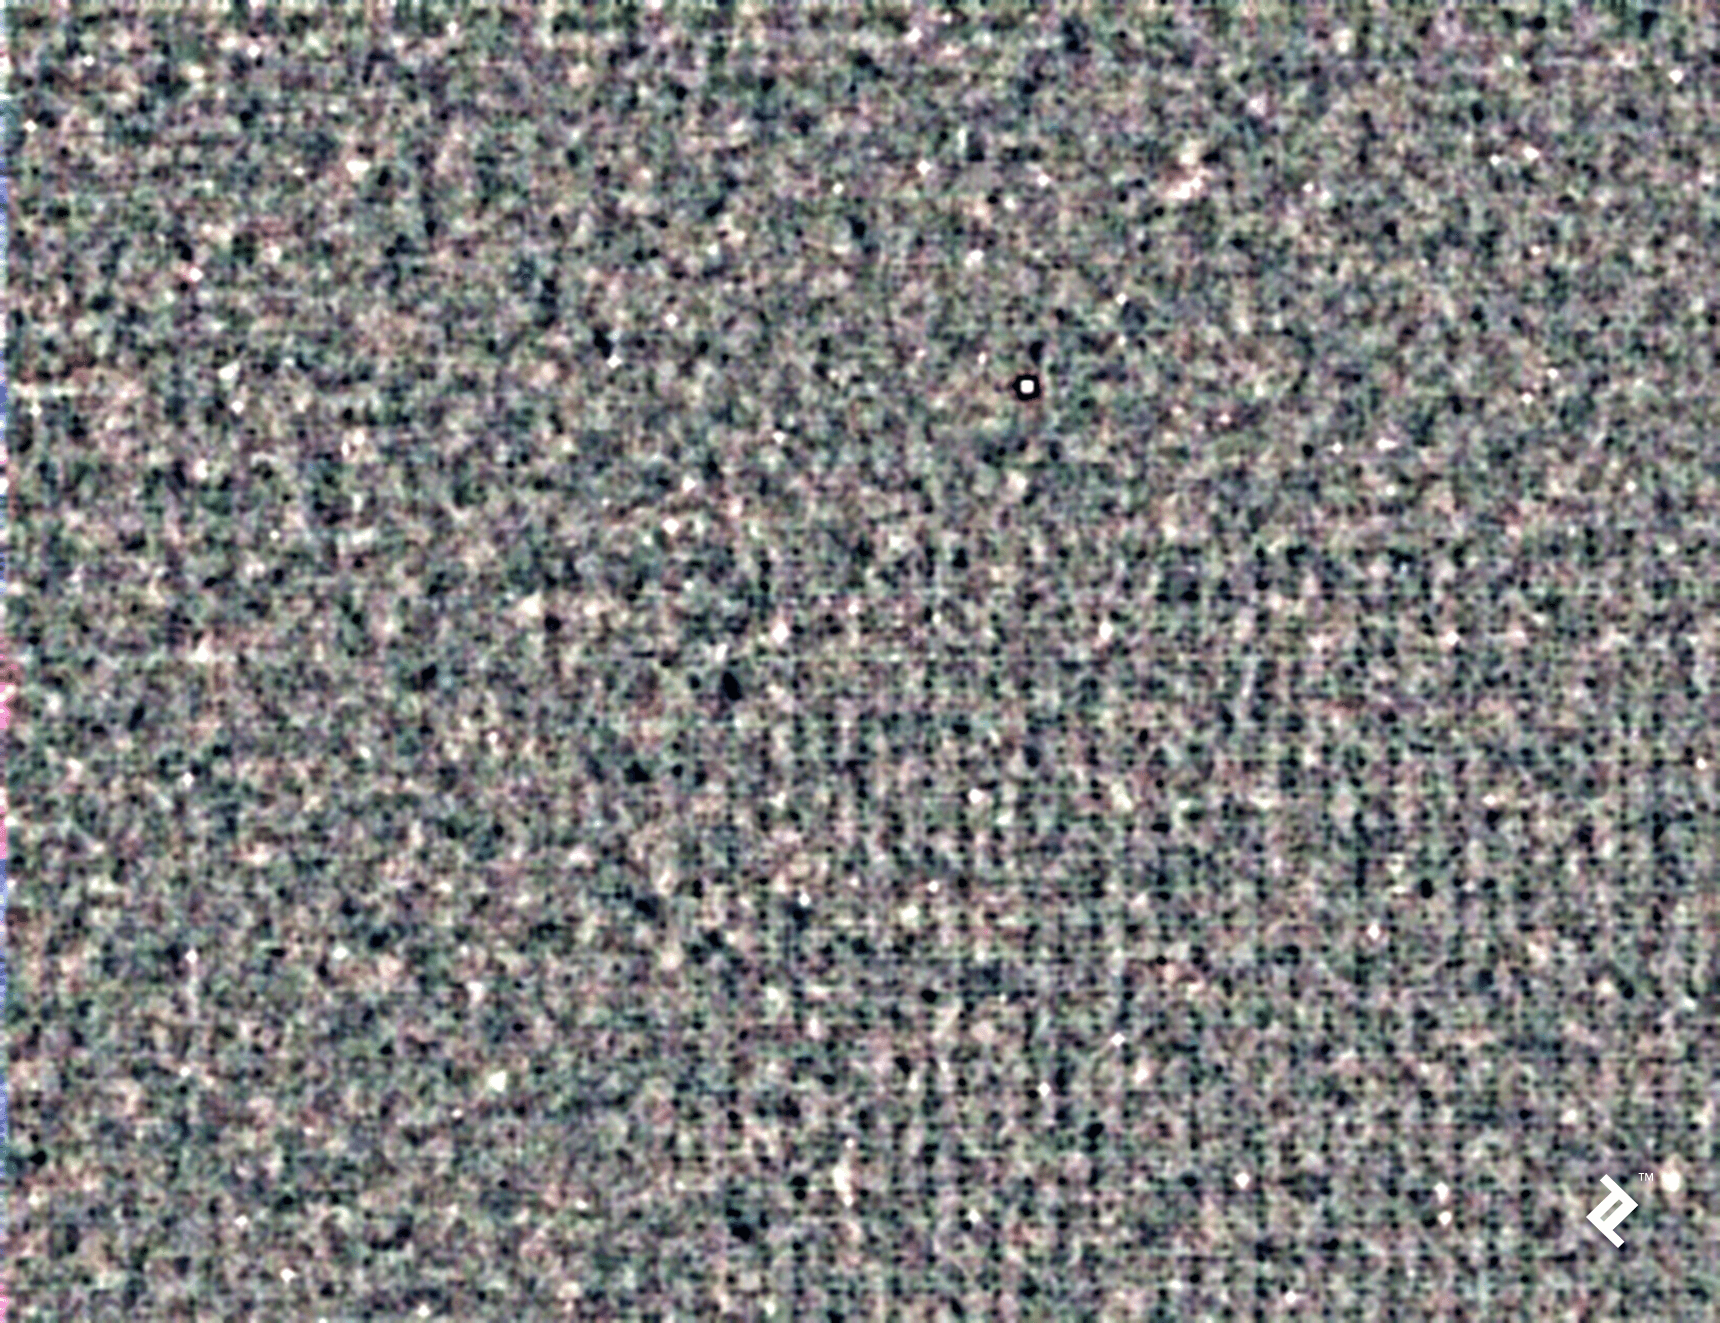 The pattern noise for the portion of the frame displayed in the previous image